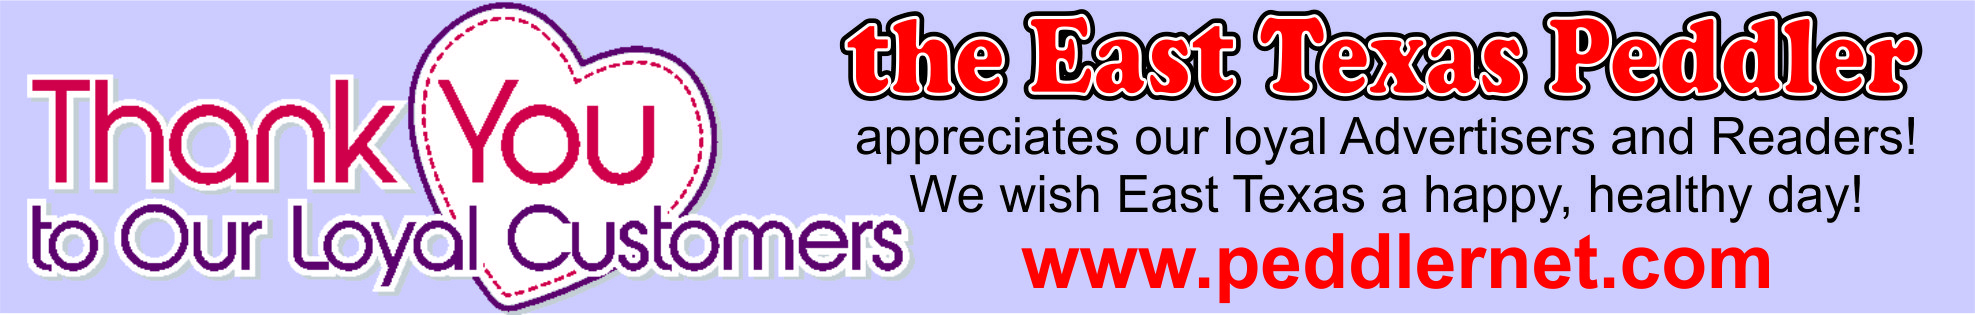 The East Texas Peddler Thank You Banner